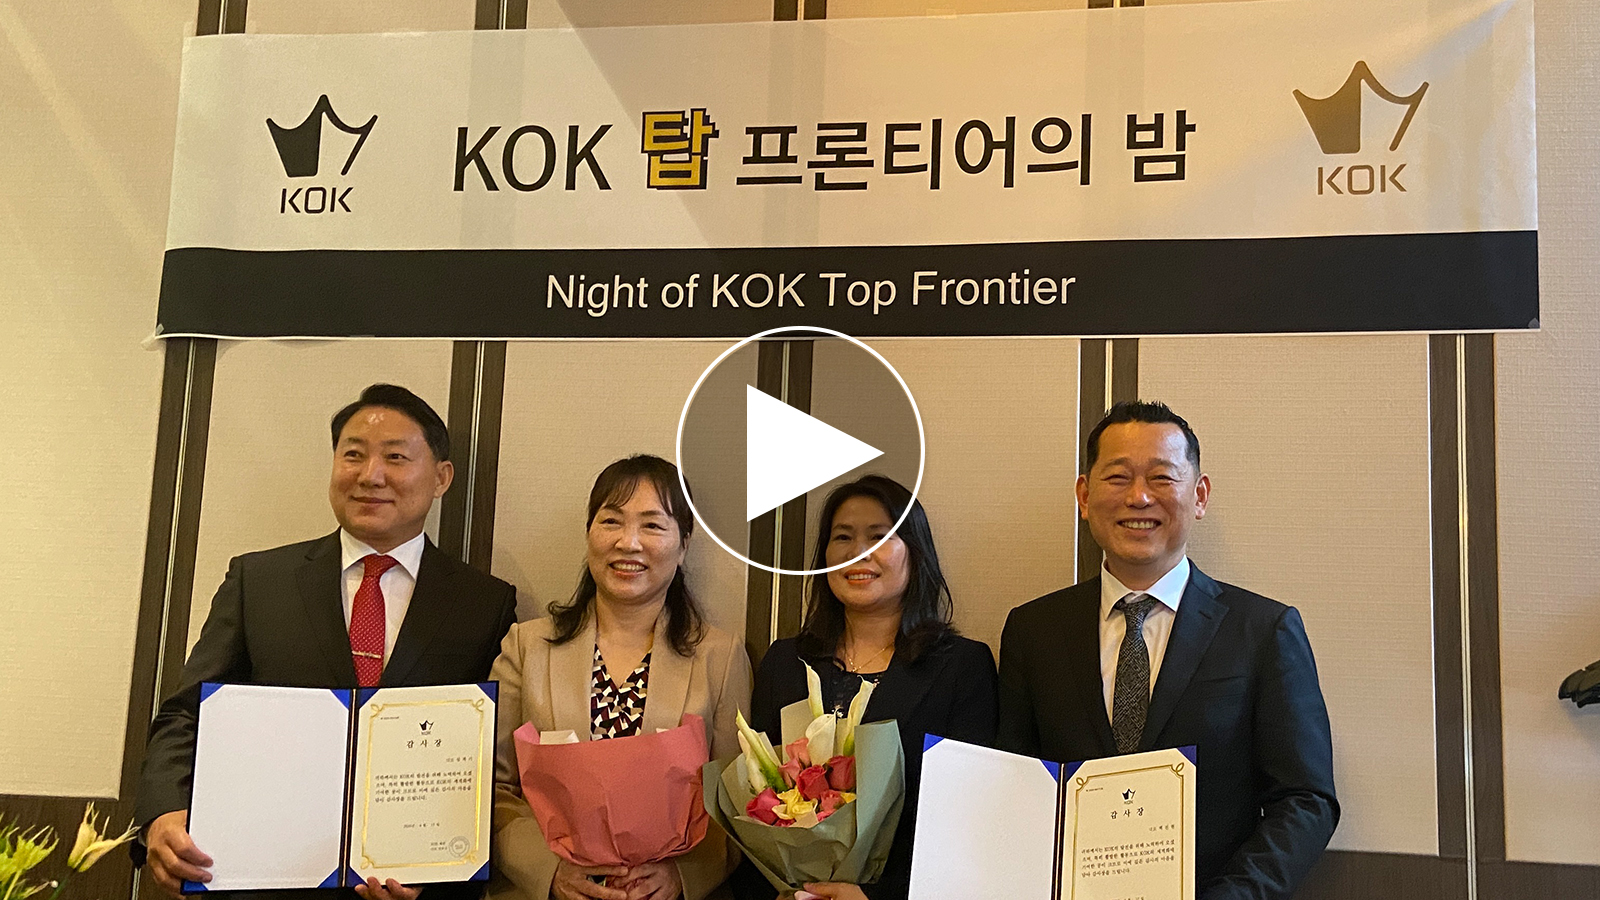 Held 'Night of KOK Top Frontier'